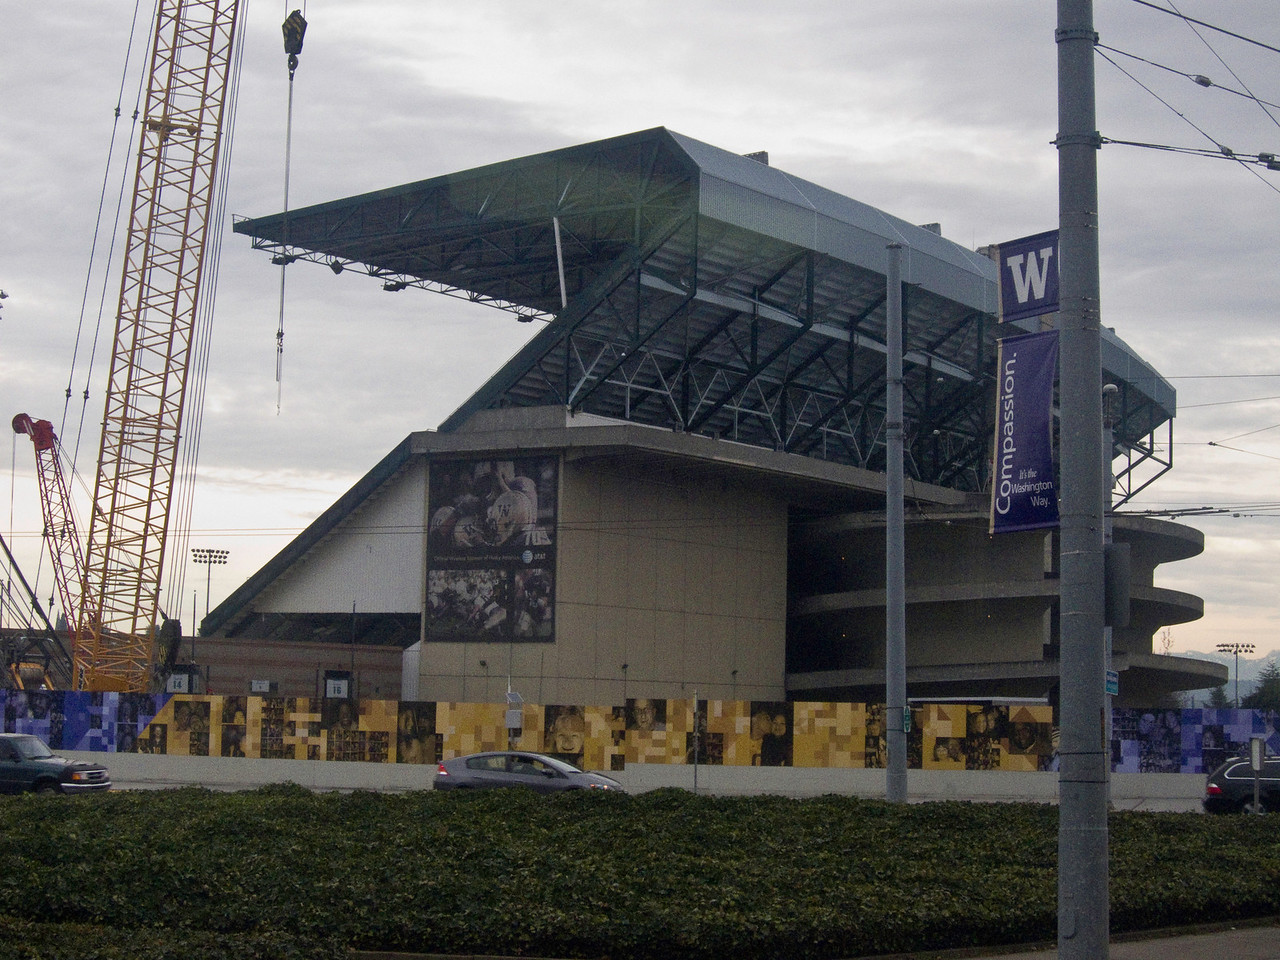 The old Husky stadium. It is scheduled to be demolished and replaced.